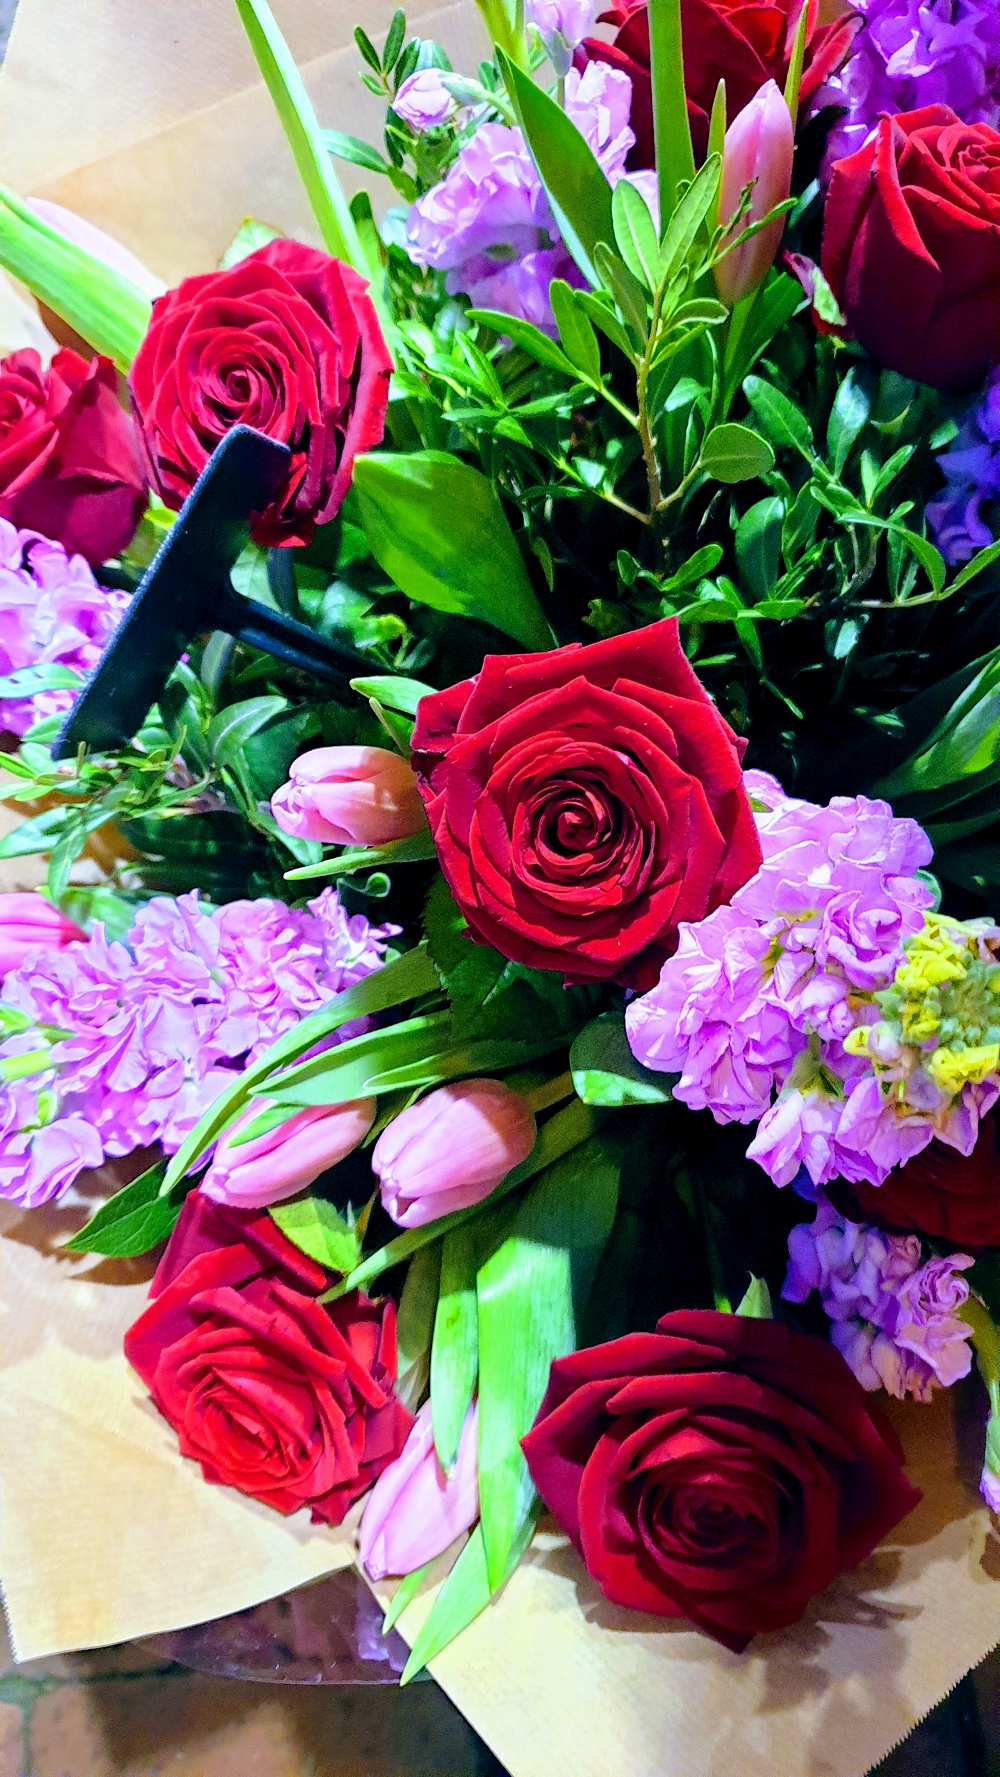 Fresh Flowers Friday: Welcome To The Weekend